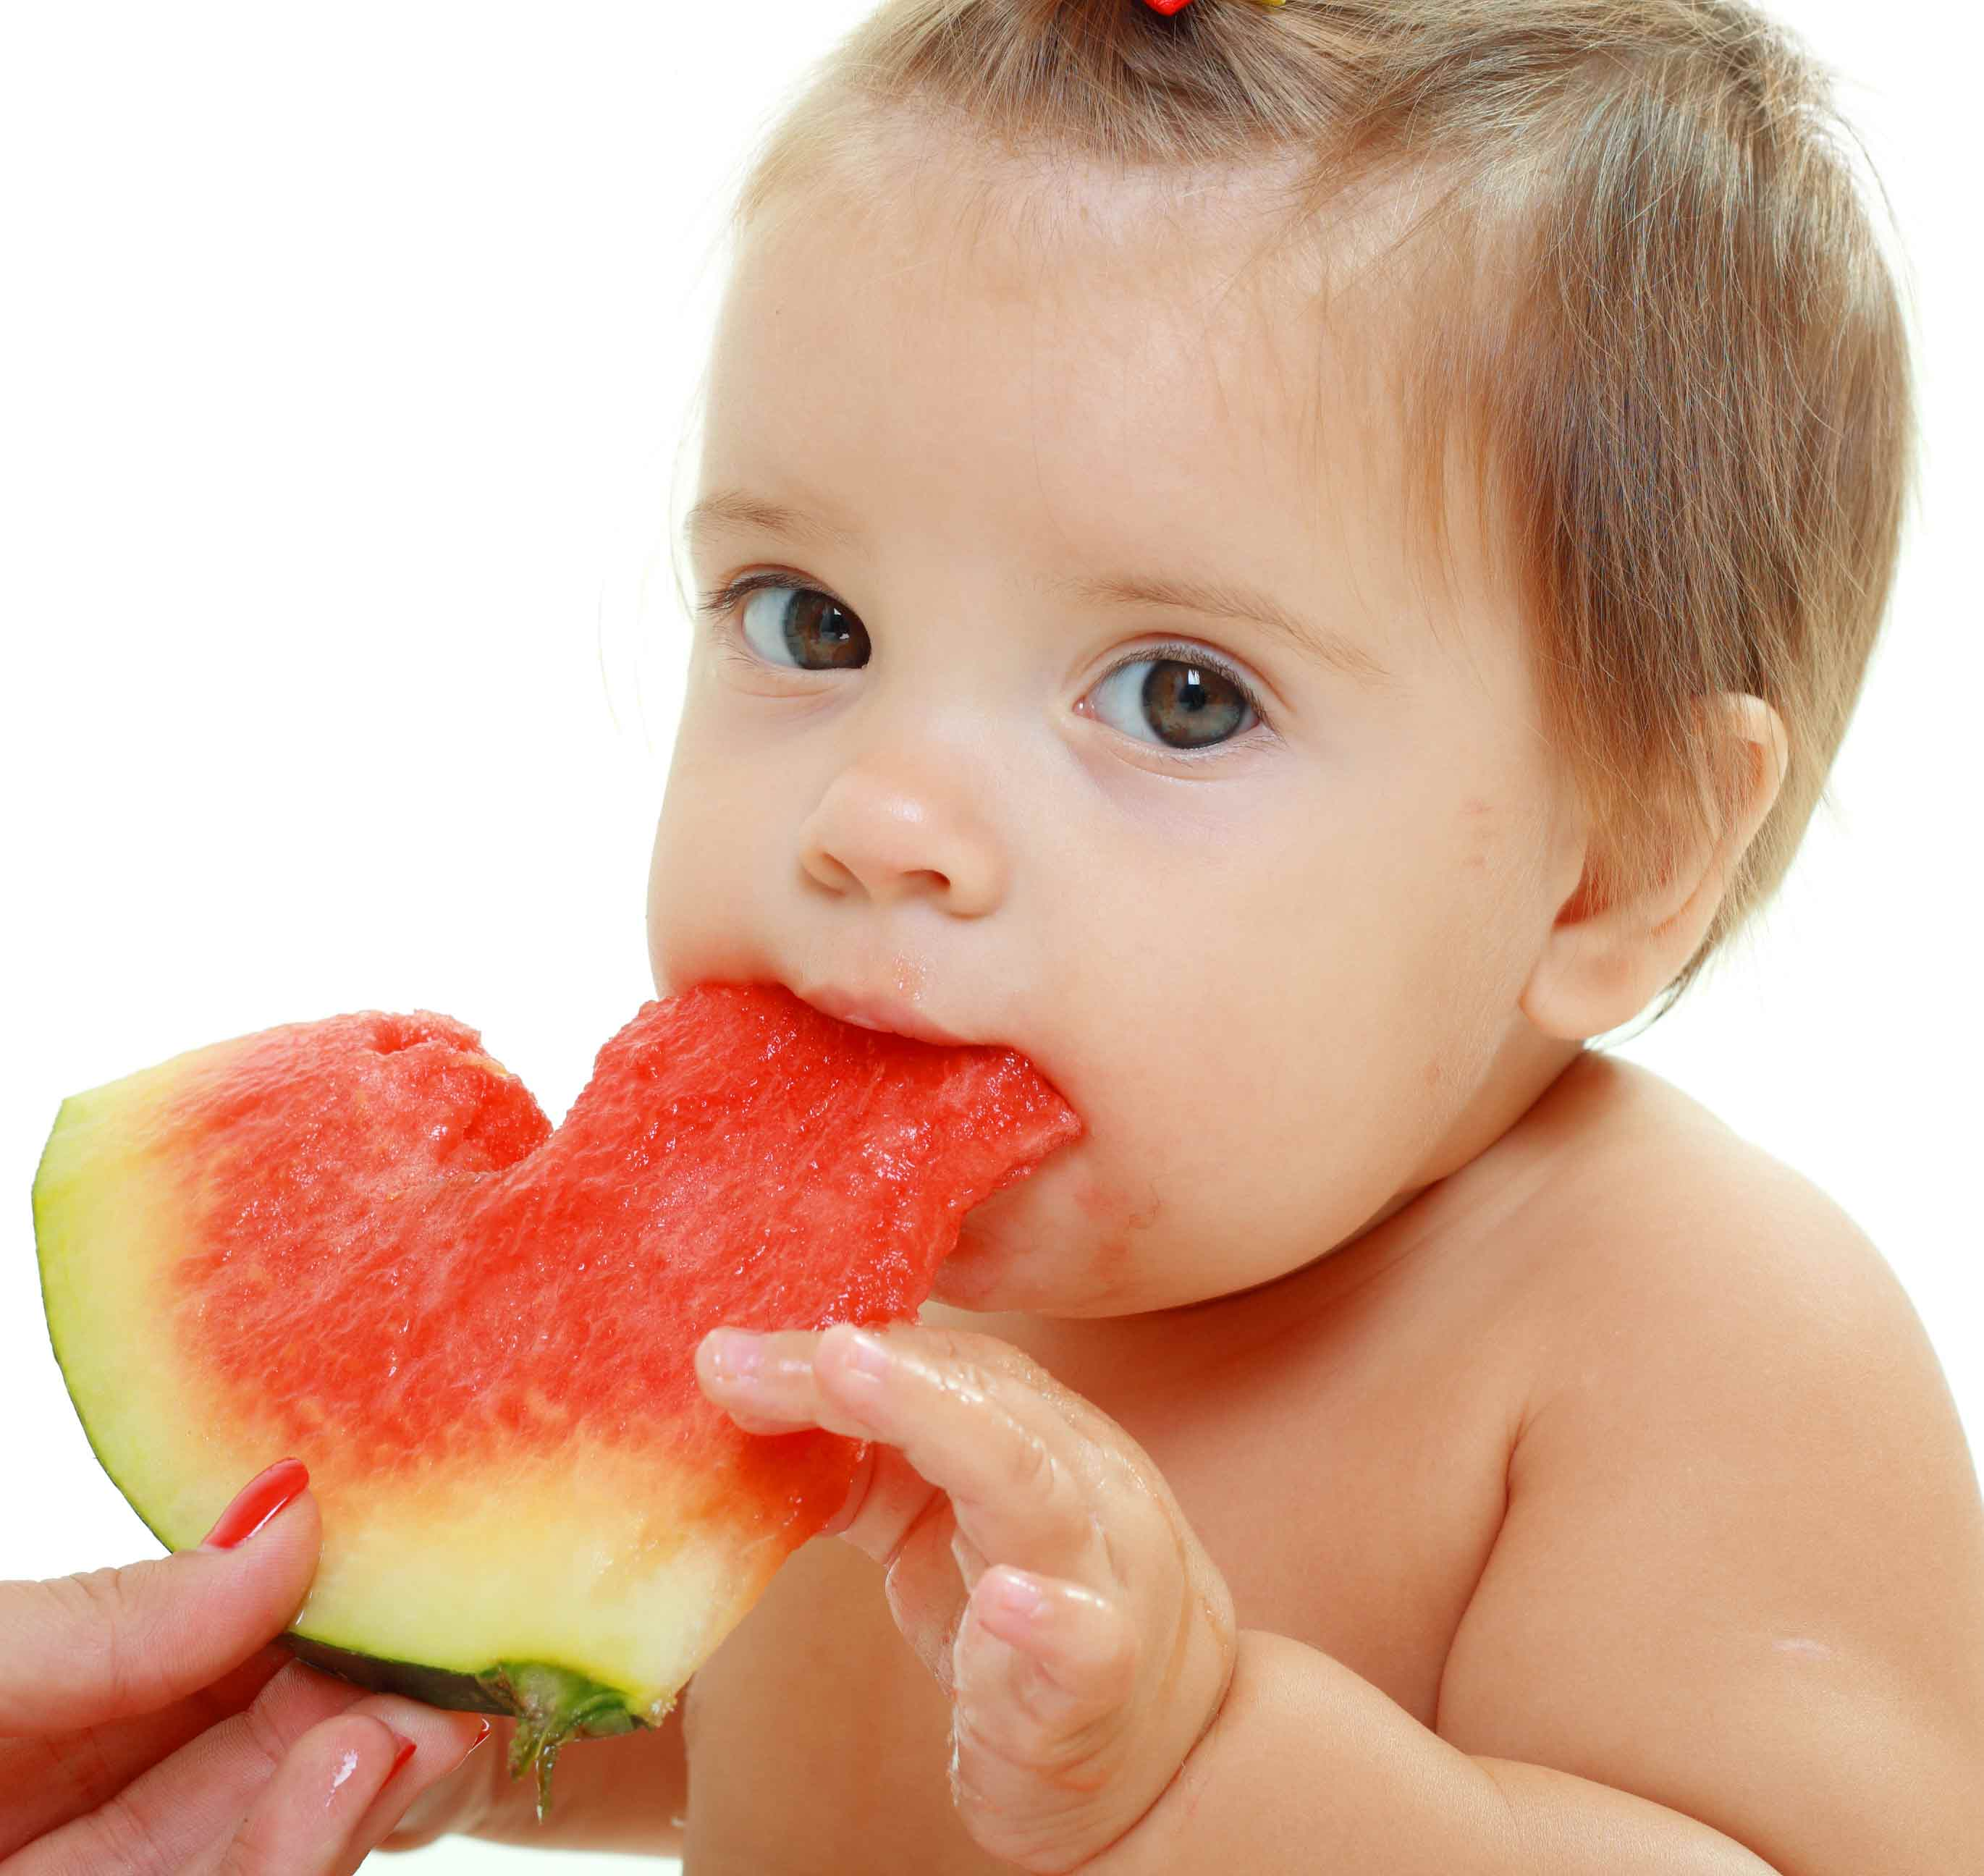 Baby-Led Weaning-Introducing Solids to Baby. Find out how to skip the purees and go straight to solid foods.